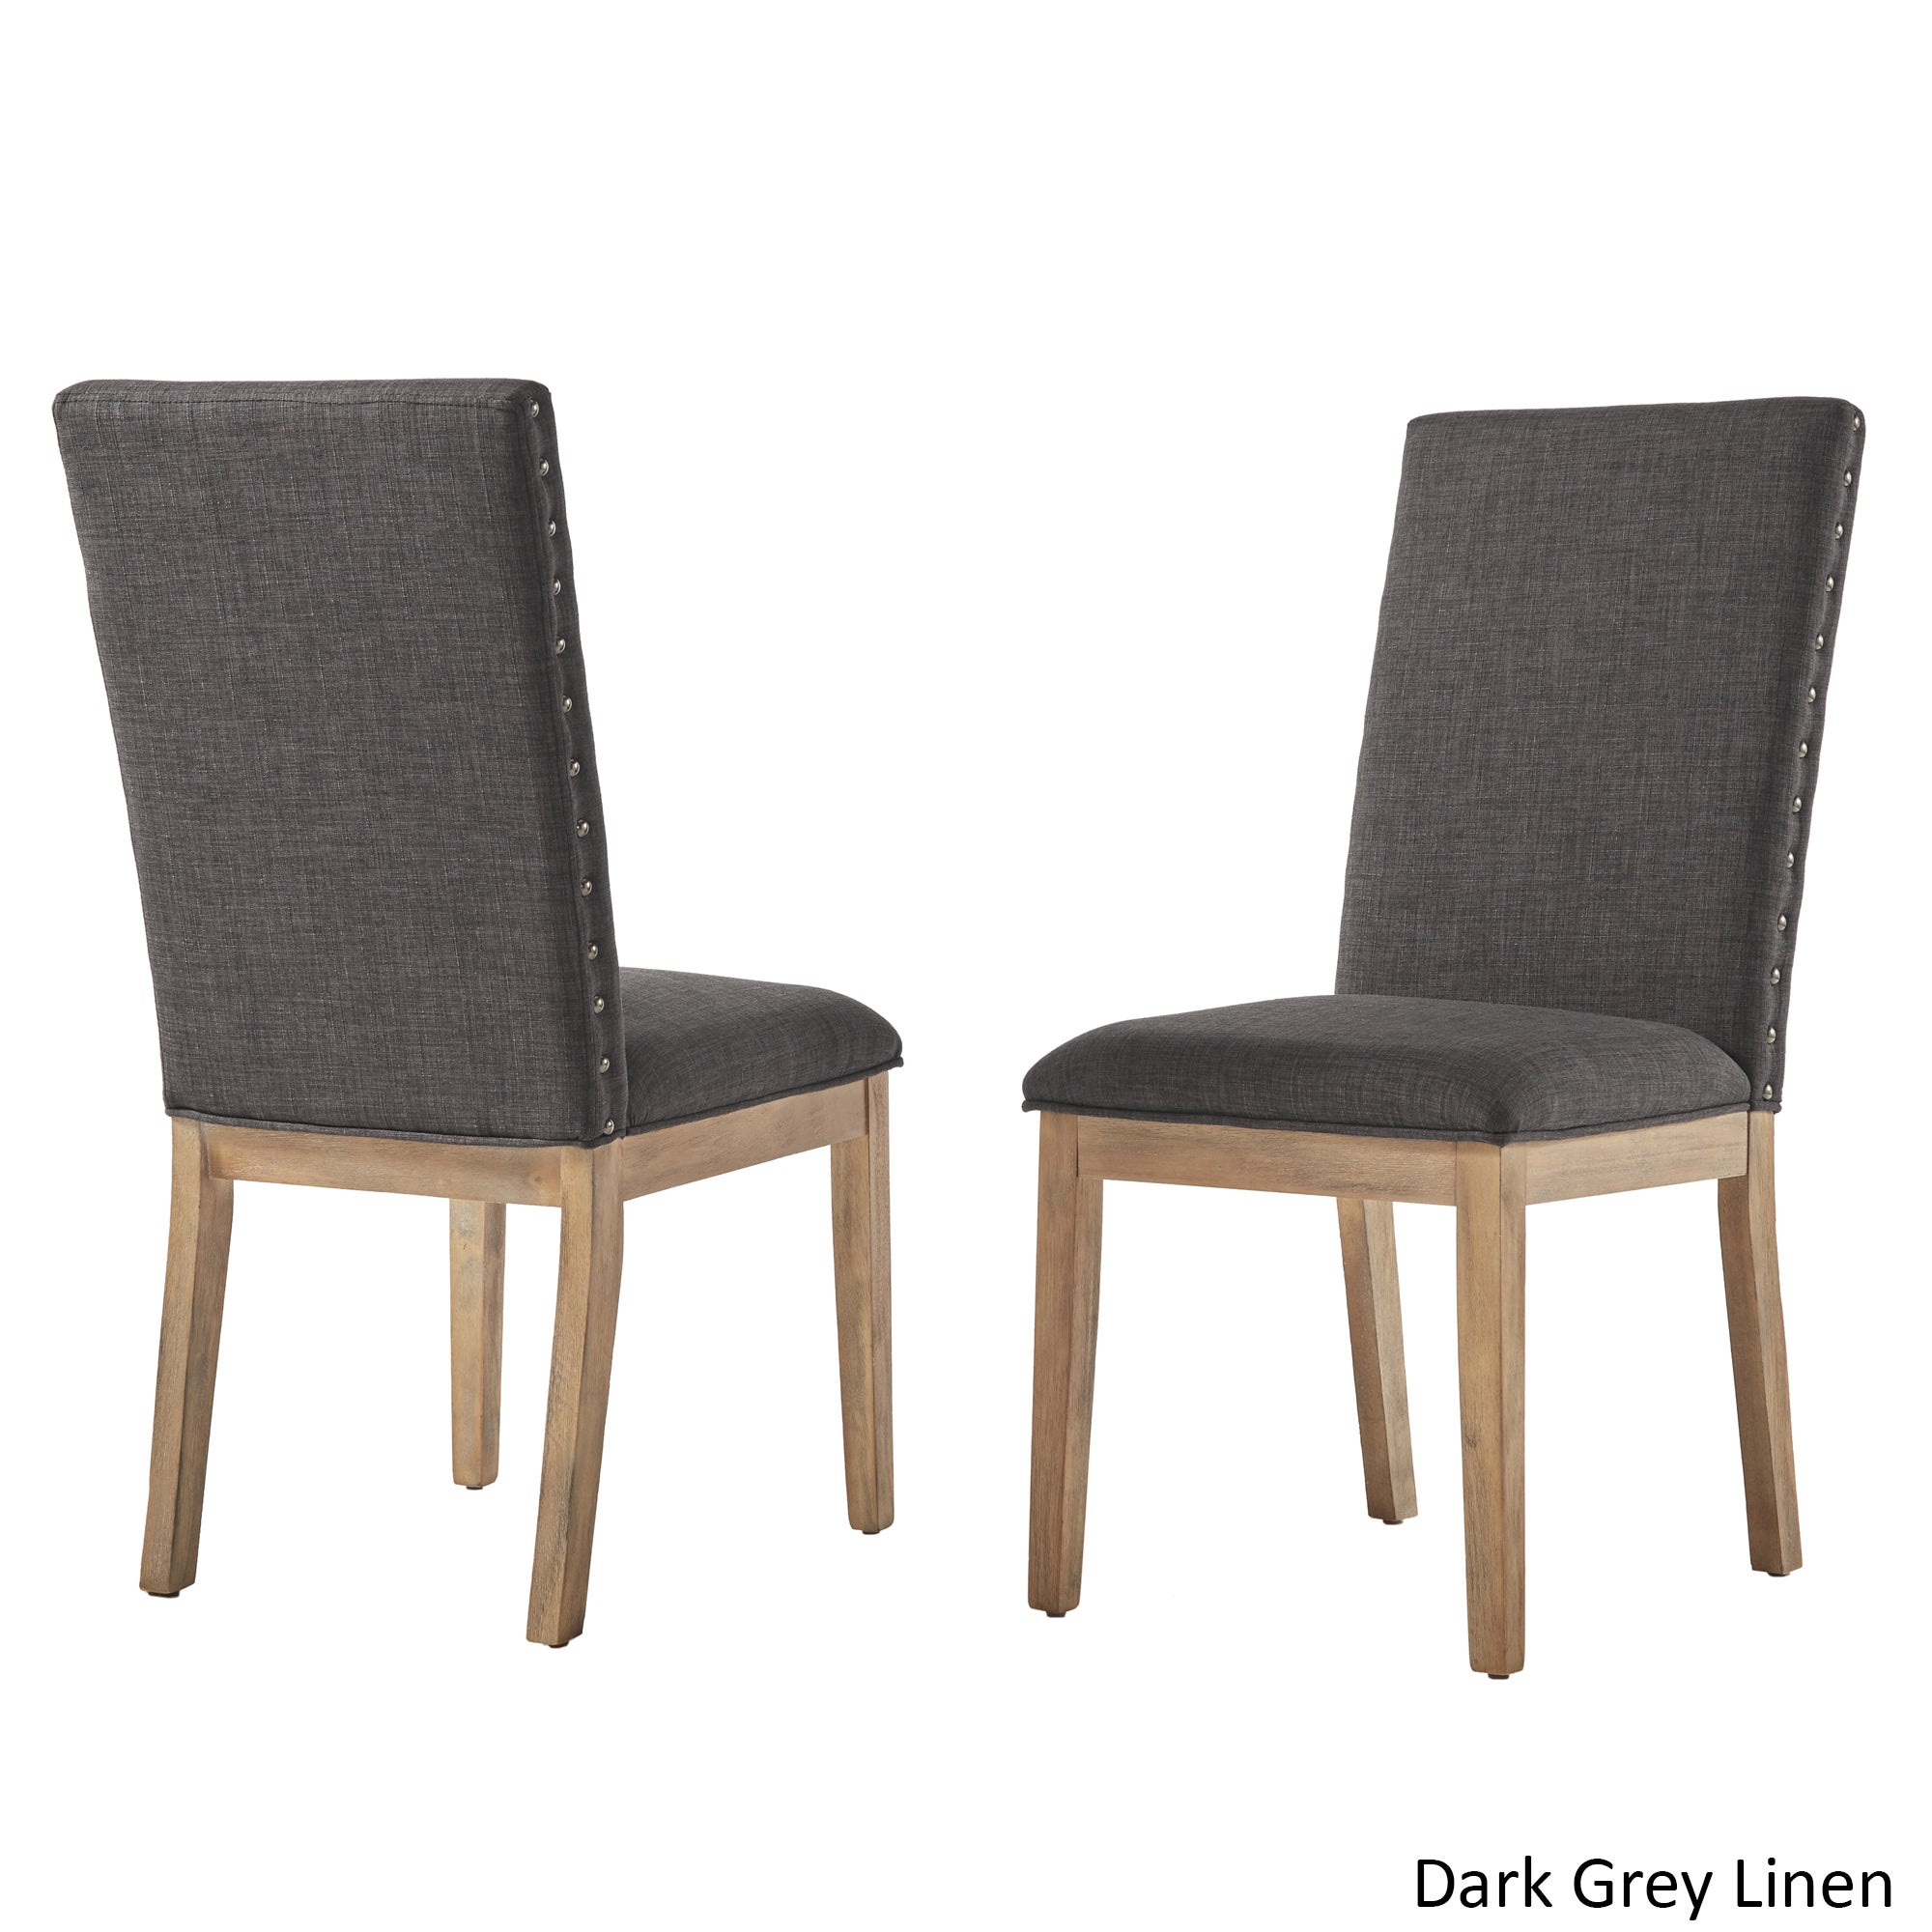 linen dining chairs ivory shop voyager nailhead accent parson linen dining chair set of 2 by inspire artisan on sale free shipping today overstockcom 16180074